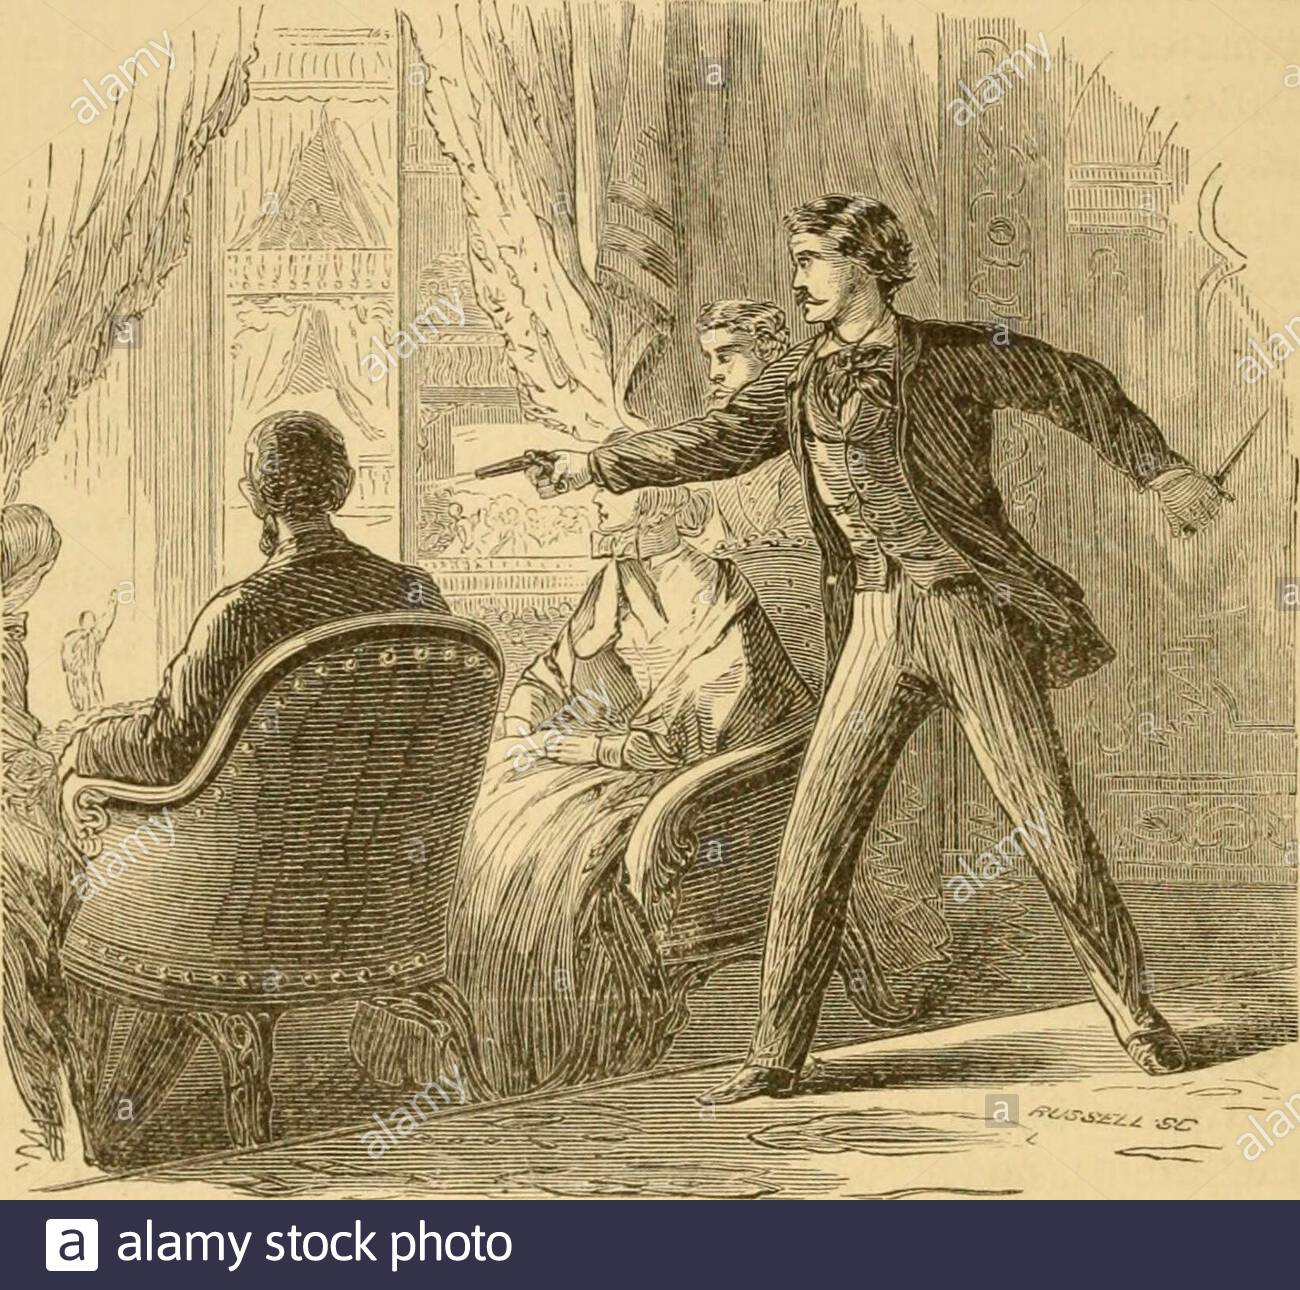 lives-of-the-presidents-of-the-united-states-of-america-from-washington-to-the-present-time-sic-semper-tyrannis-1-rushed-across-it-inthe-terrible-confusion-which-ensued-mounted-a-fleet-horse-at-thedoor-and-esca